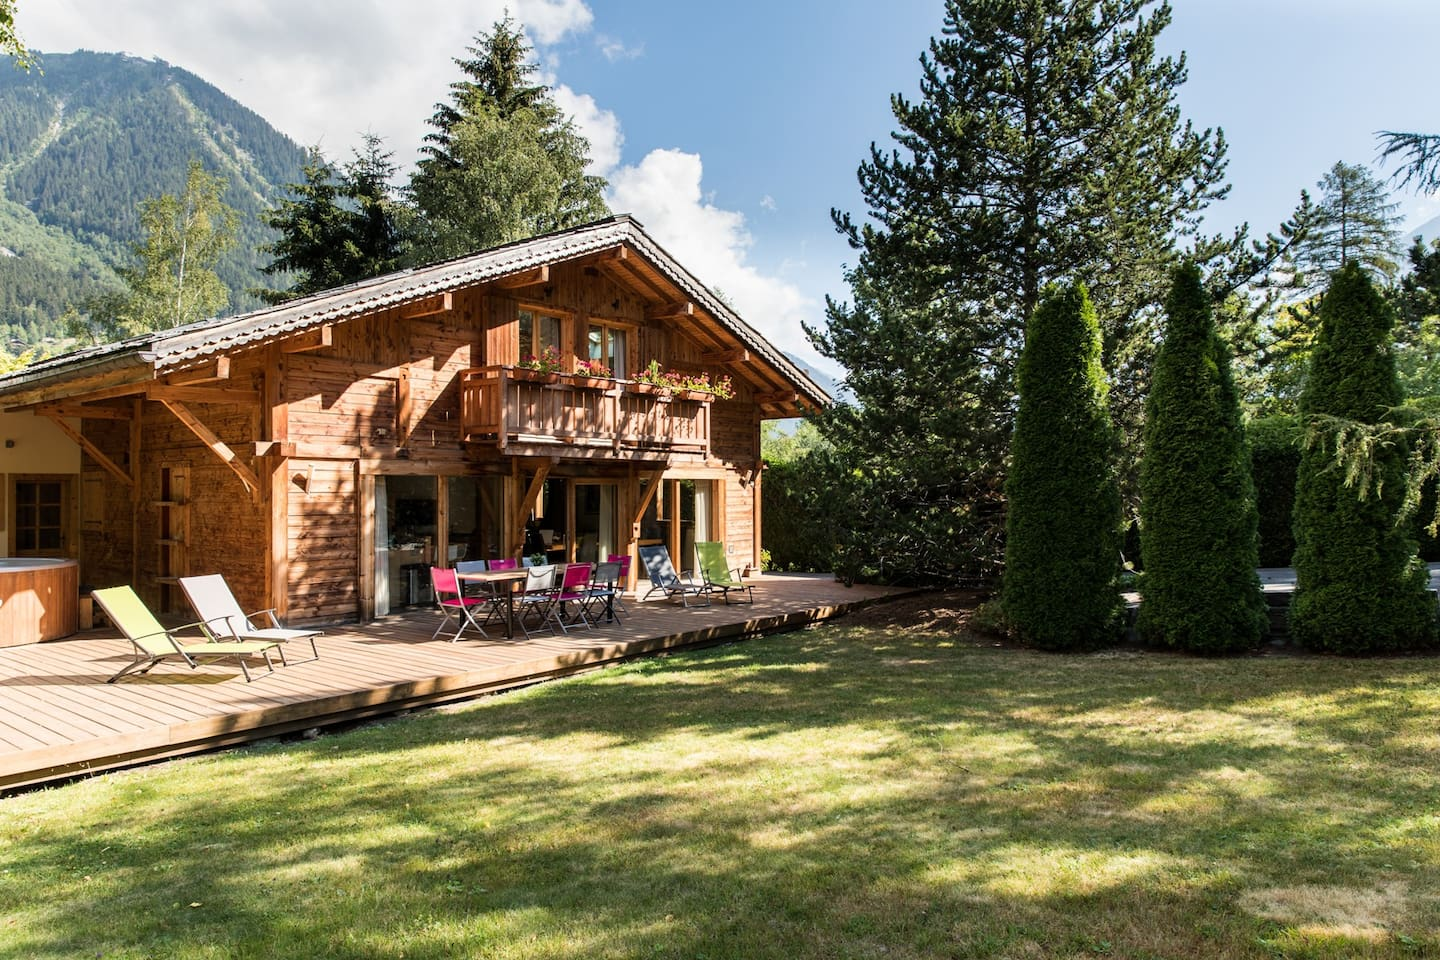 The exterior of Chalet les Favrands in Summer